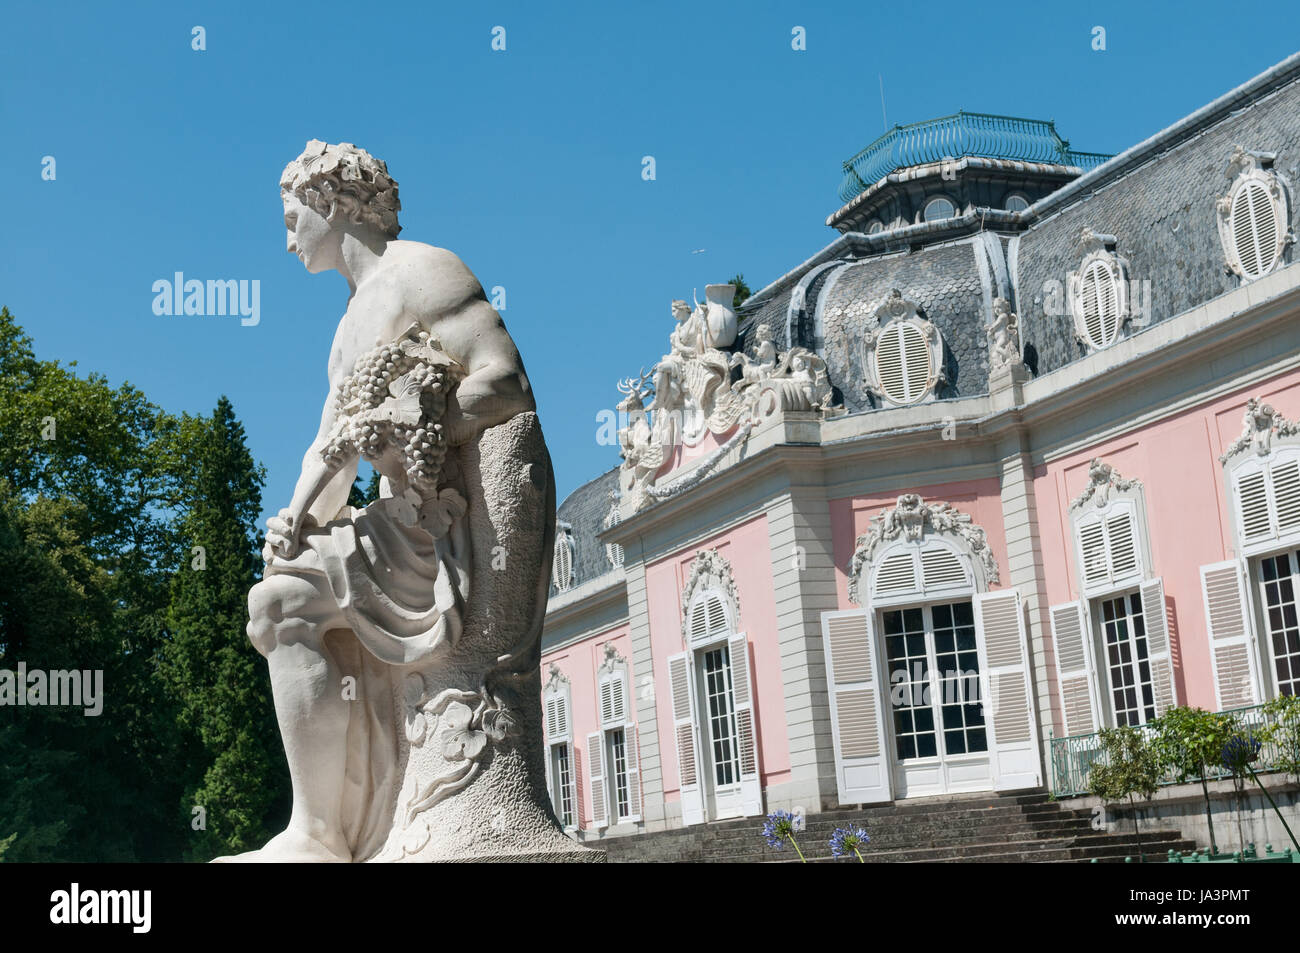 statue, baroque, germany, german federal republic, style of construction, Stock Photo